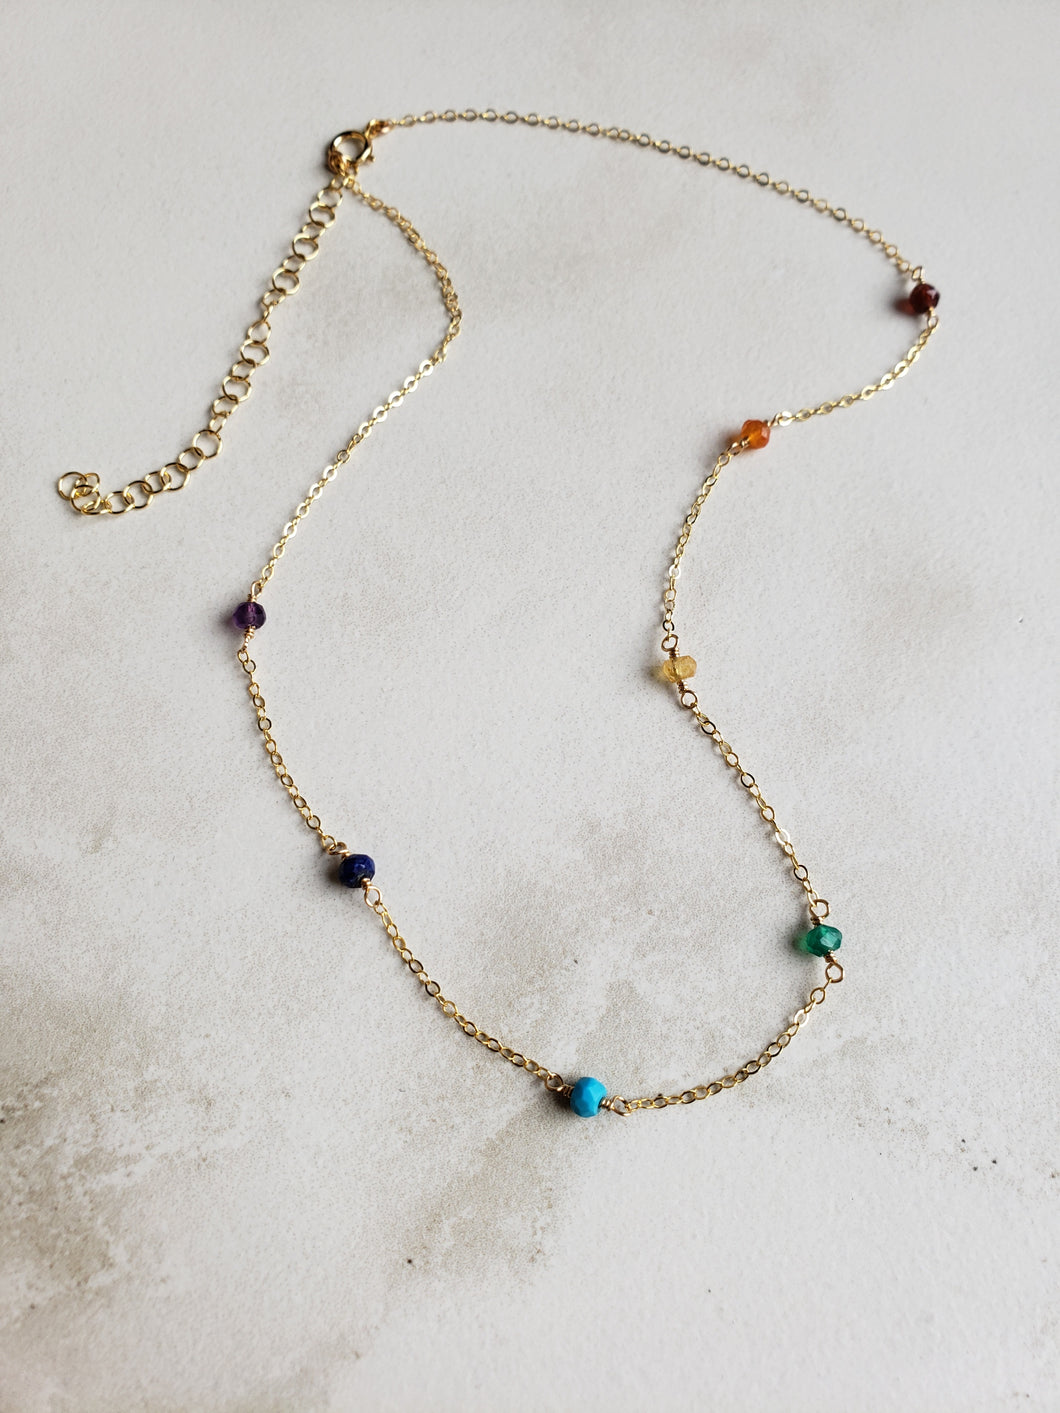 Segmented Rainbow Necklace